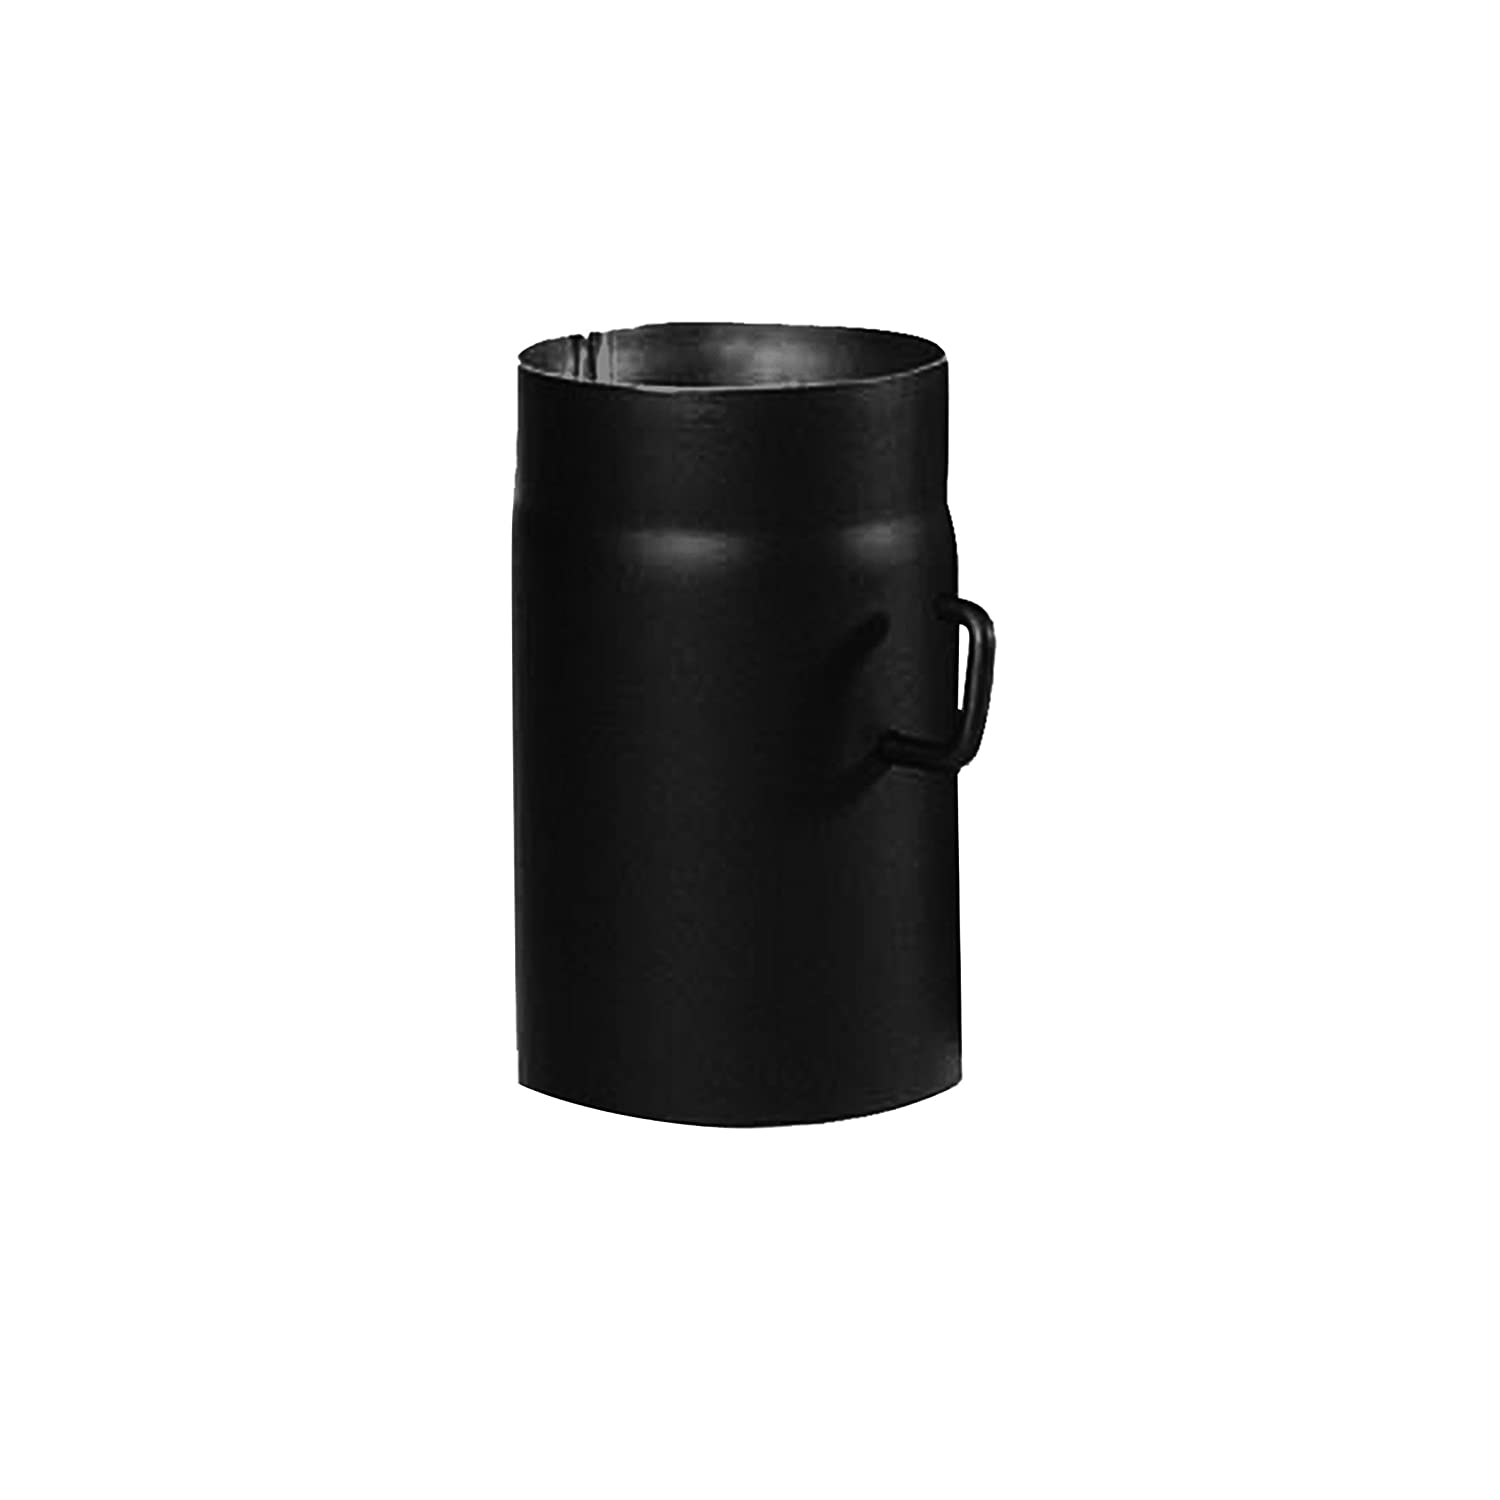 Kamino - Flam Ø 150 mm Stove Pipe with Throttle, approx. 250 mm Straight Length Flue Pipe with Damper, Steel Stove Pipe Extension with Throttle Flap, Heat Resistant Senotherm Coating, Black 331840